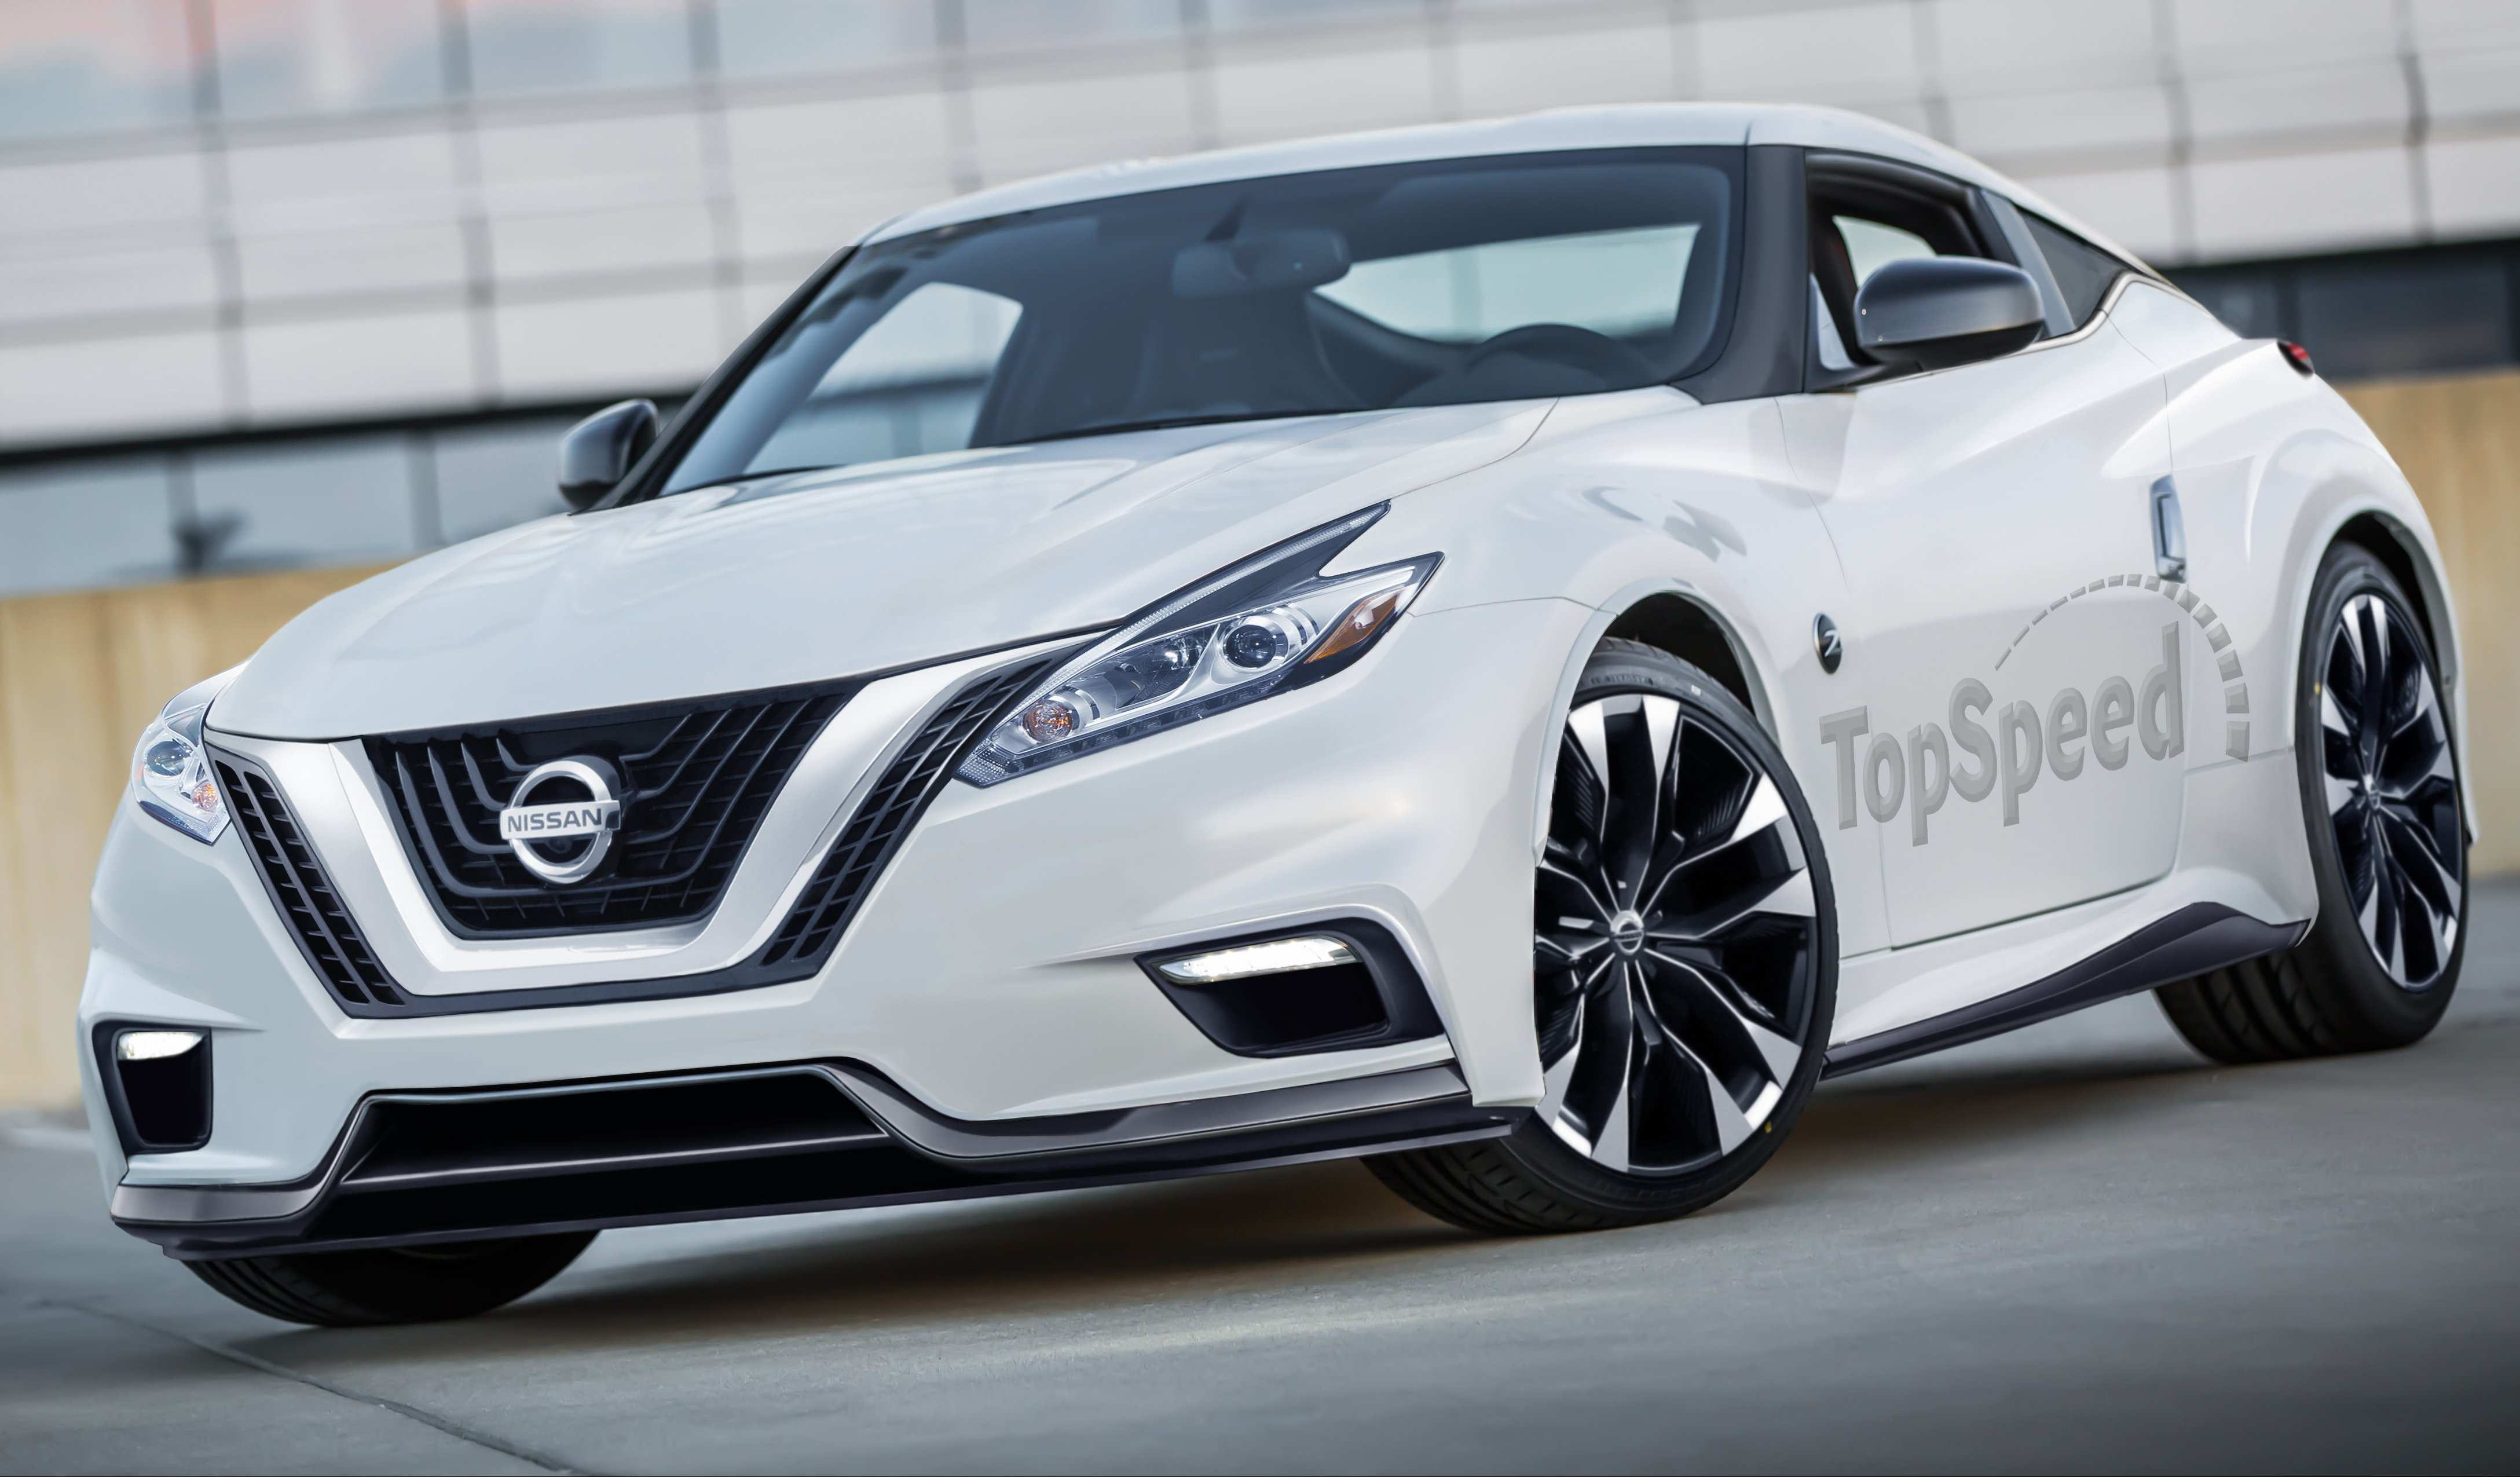 90 The Best 2019 Nissan Z Car Ratings